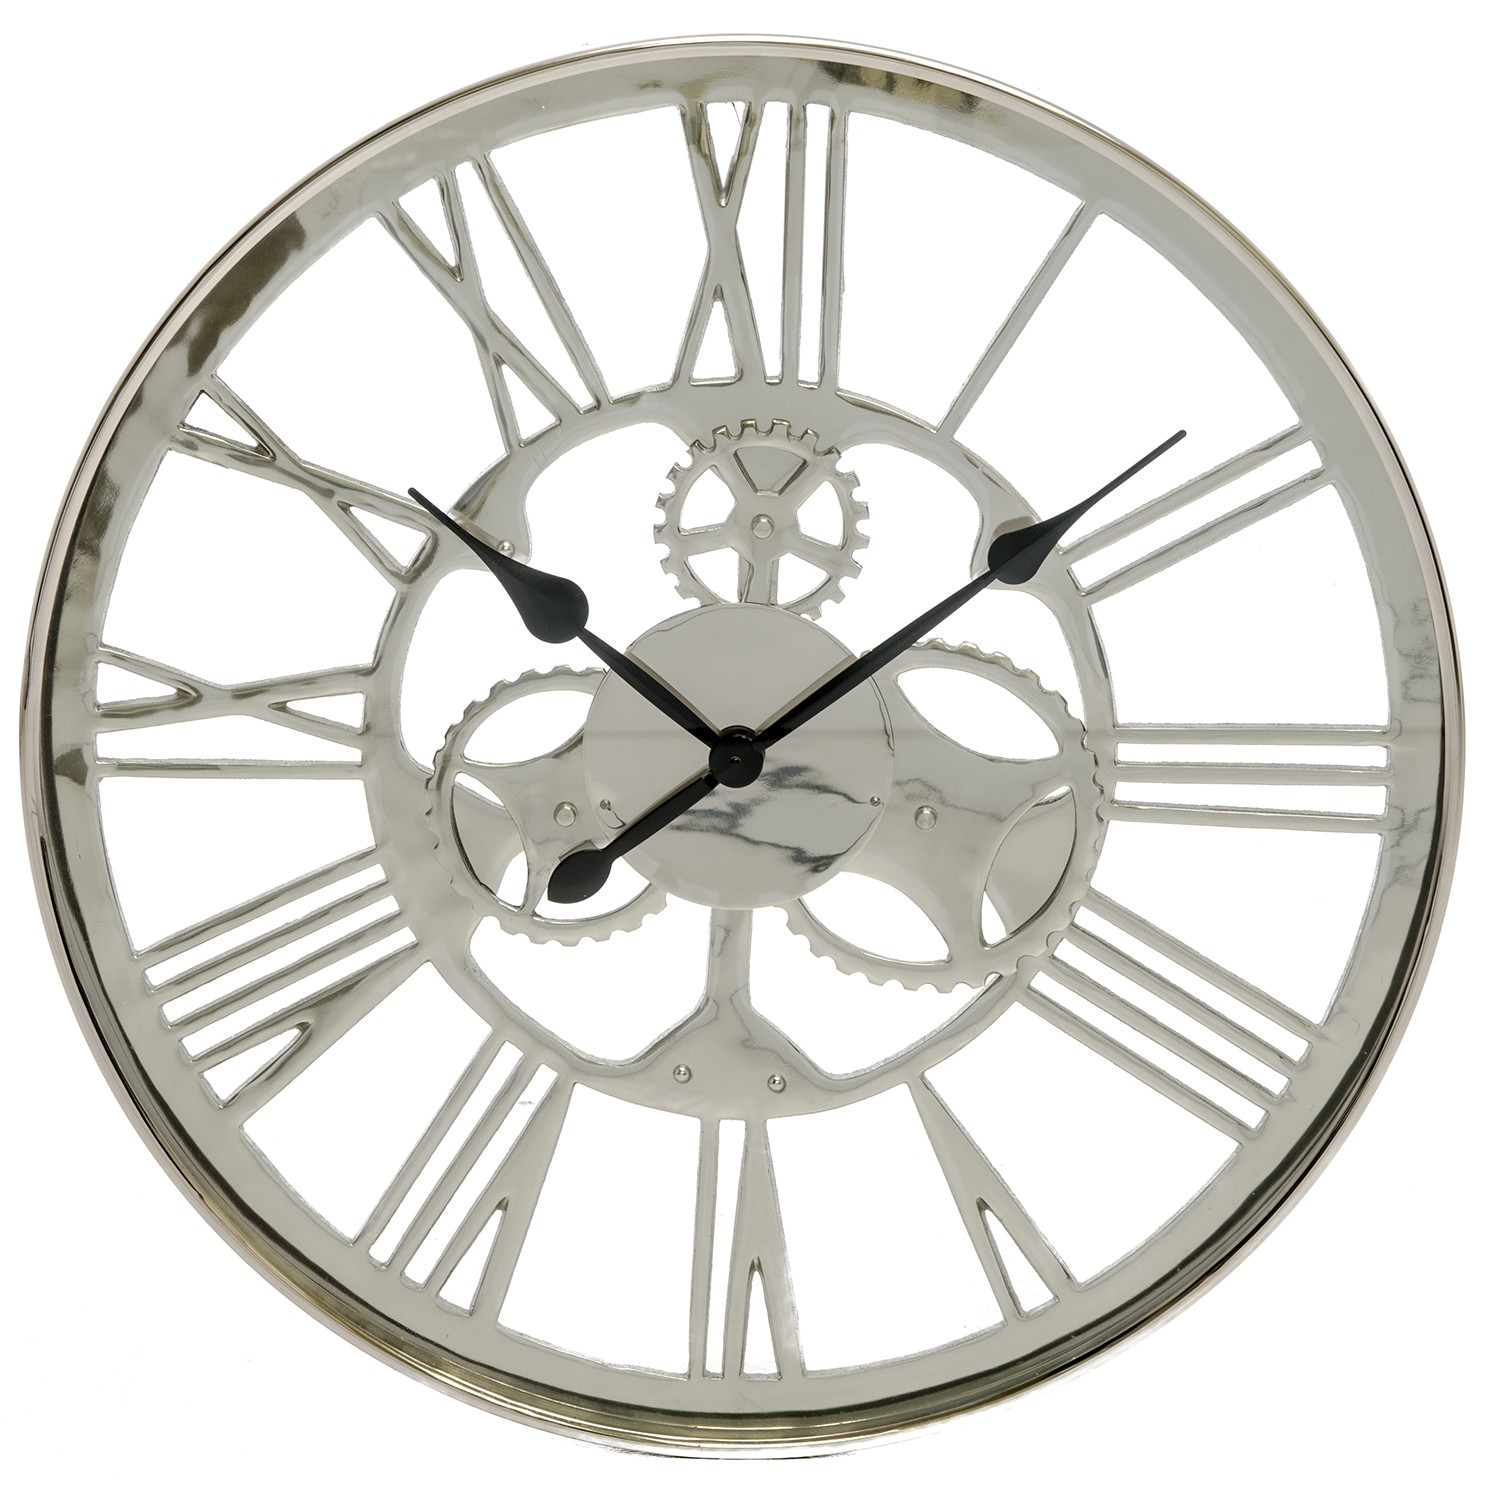 Westminster Artistic Gears Wall Clock Silver